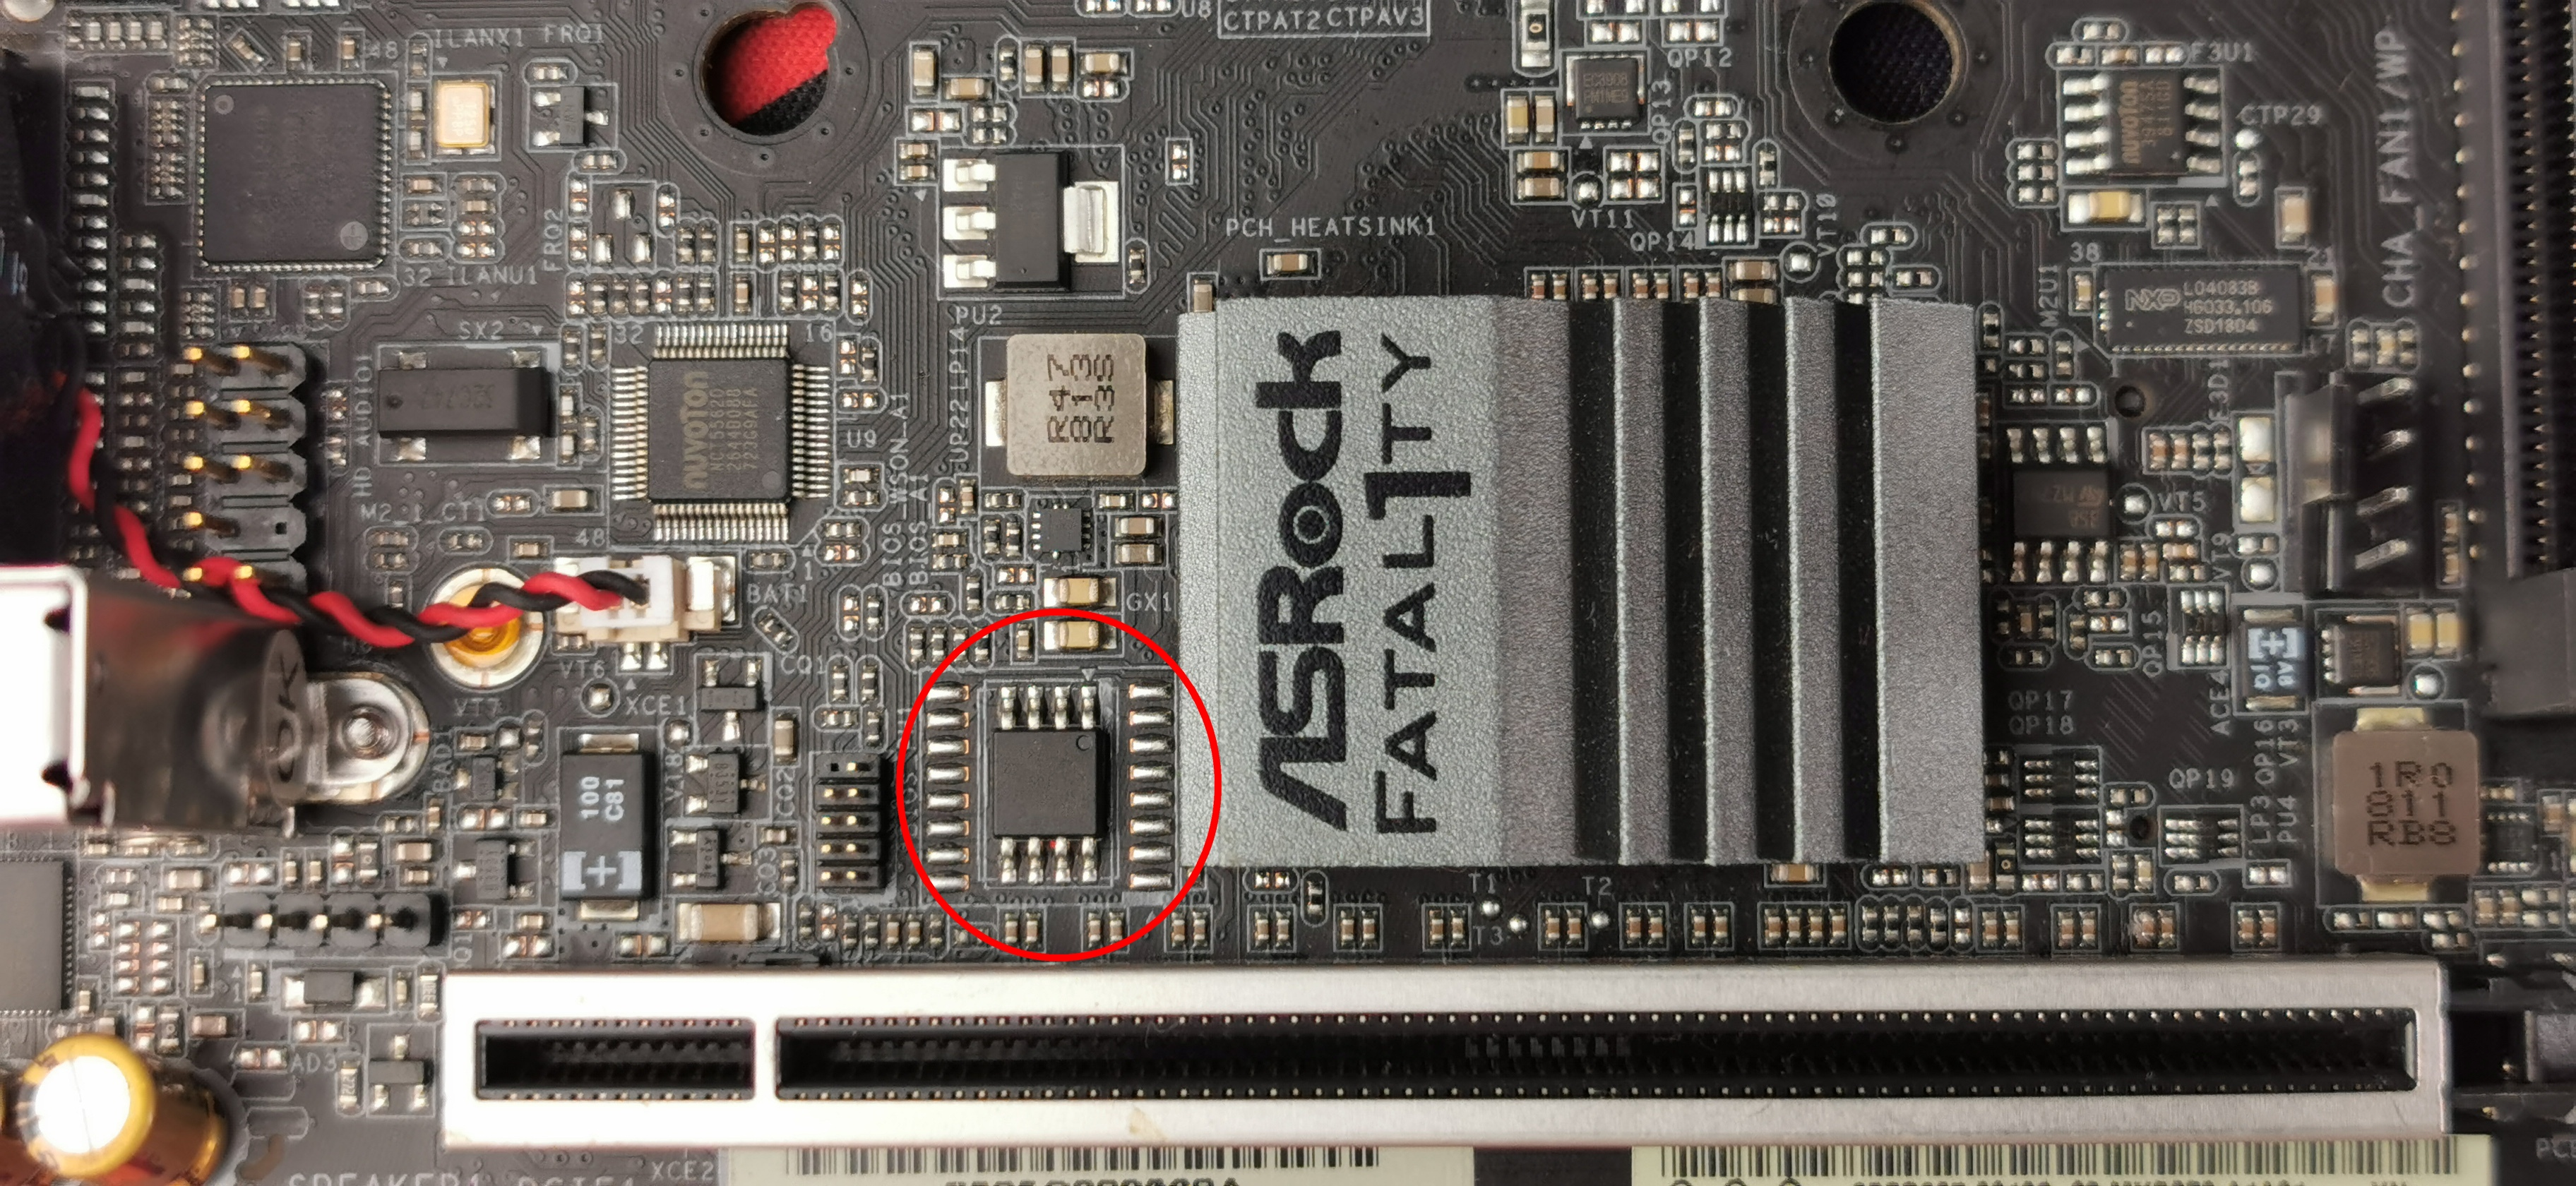 Amd To Support Zen 3 And Ryzen 4000 Cpus On B450 And X470 Motherboards